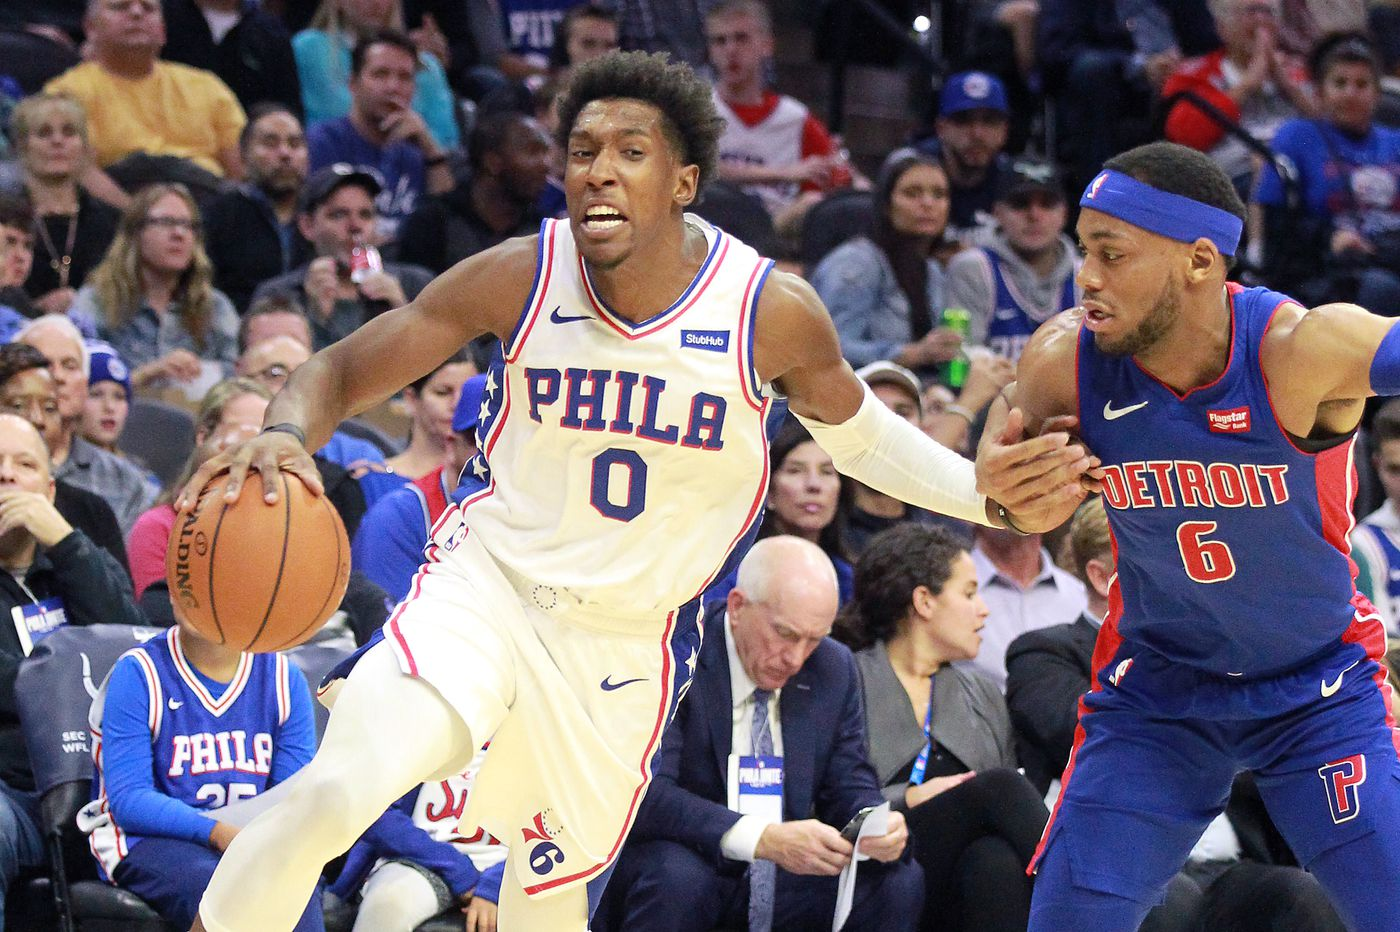 Josh Richardson will return tonight to the Sixers lineup, Furkan Korkmaz is out